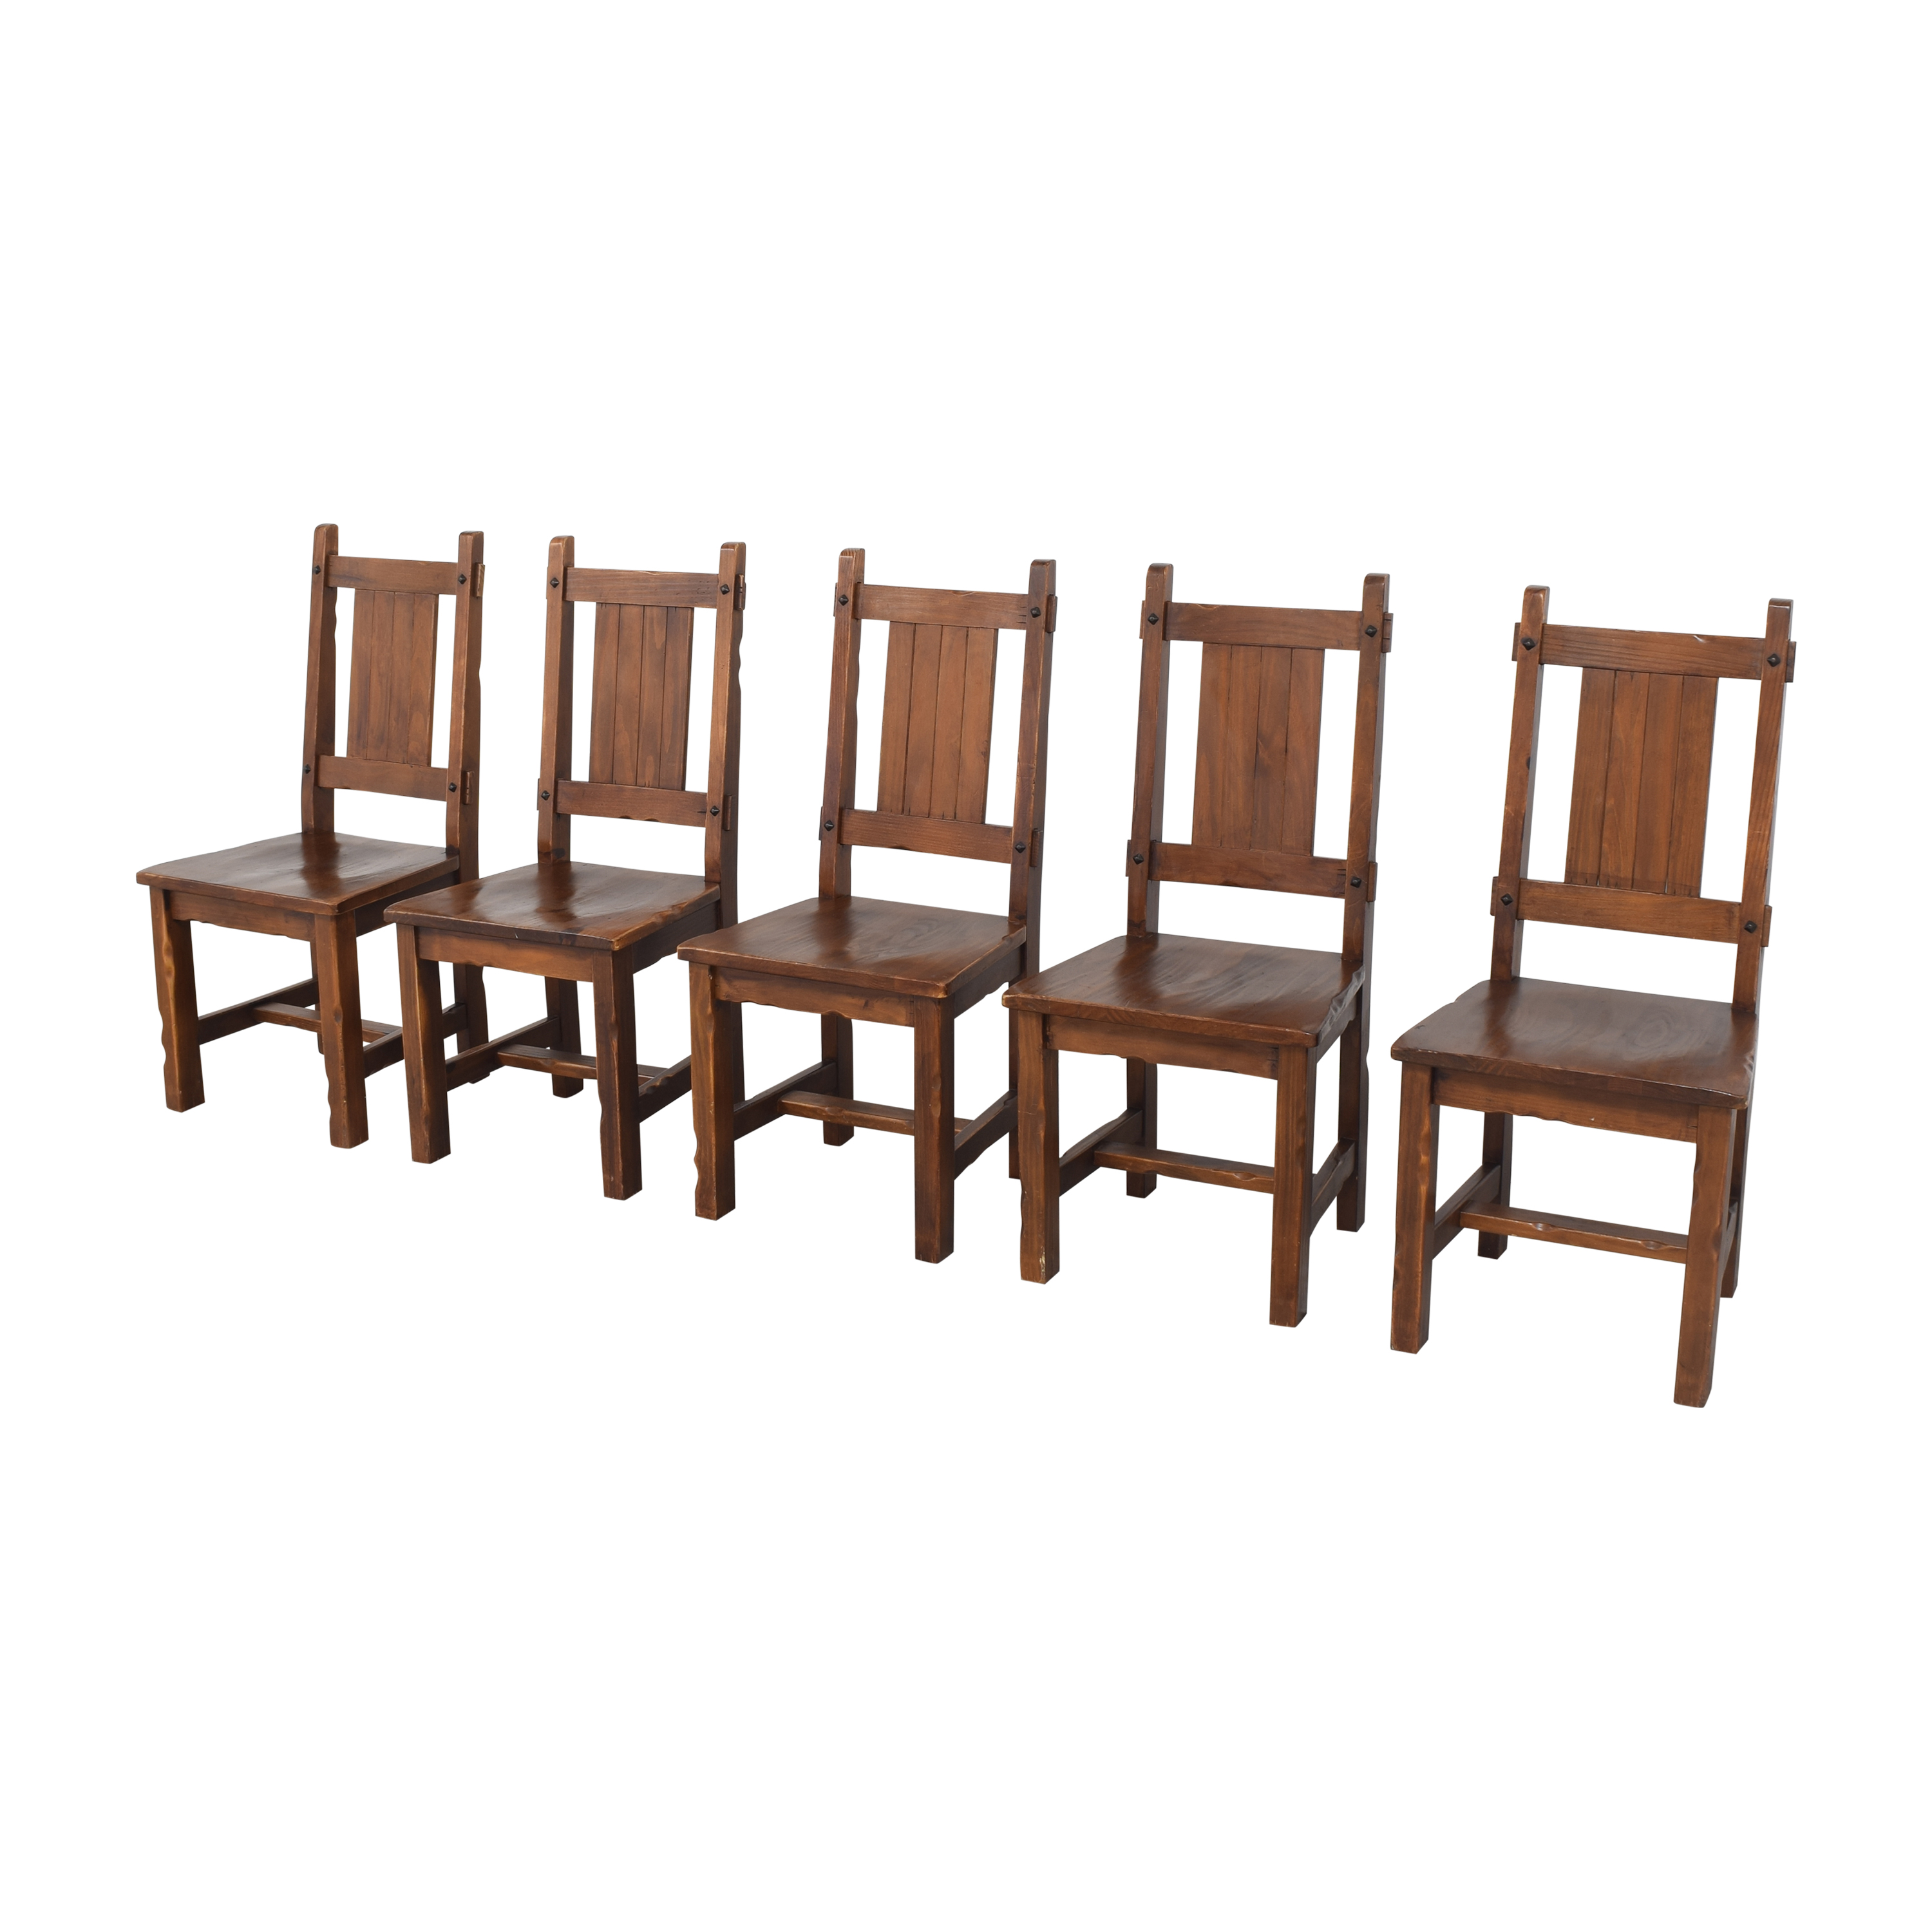 Pier 1 Pier 1 Rustic Dining Chairs for sale